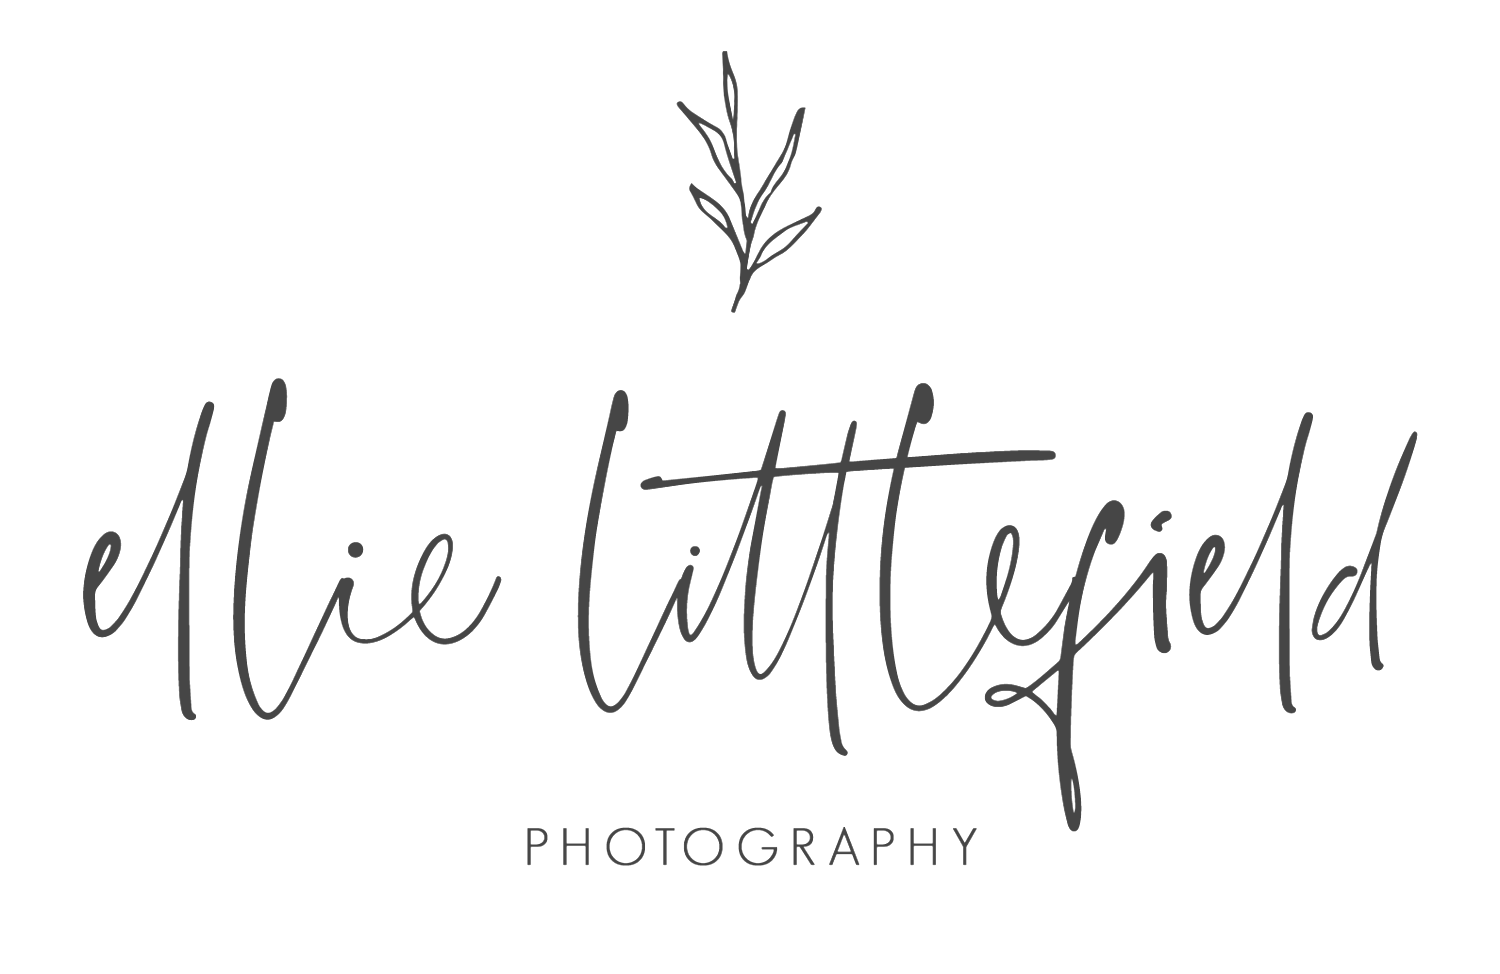 Ellie Littlefield Photography